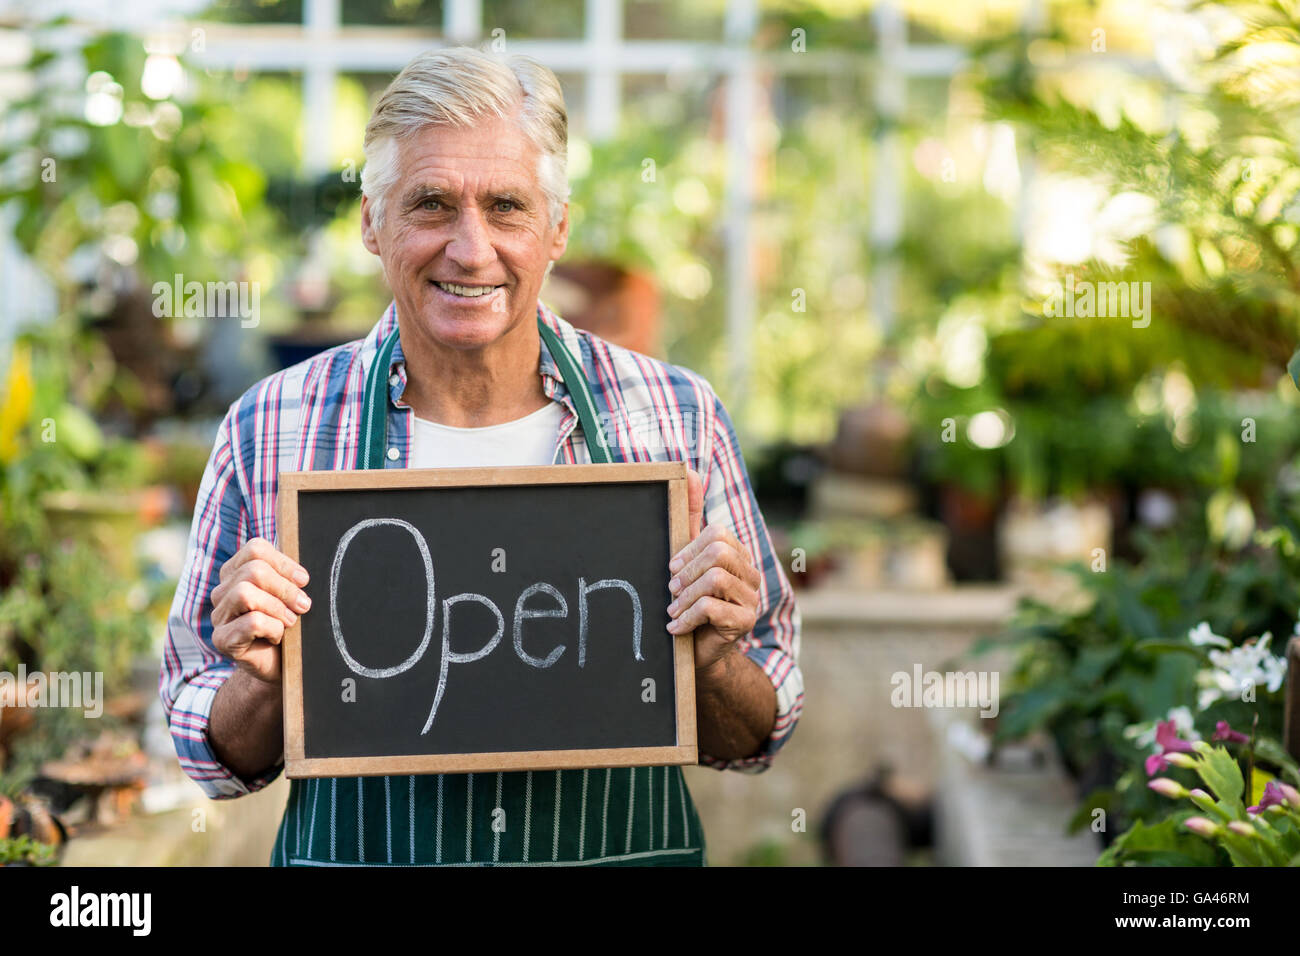 Mature owner holding open sign placard at greenhouse - Stock Image